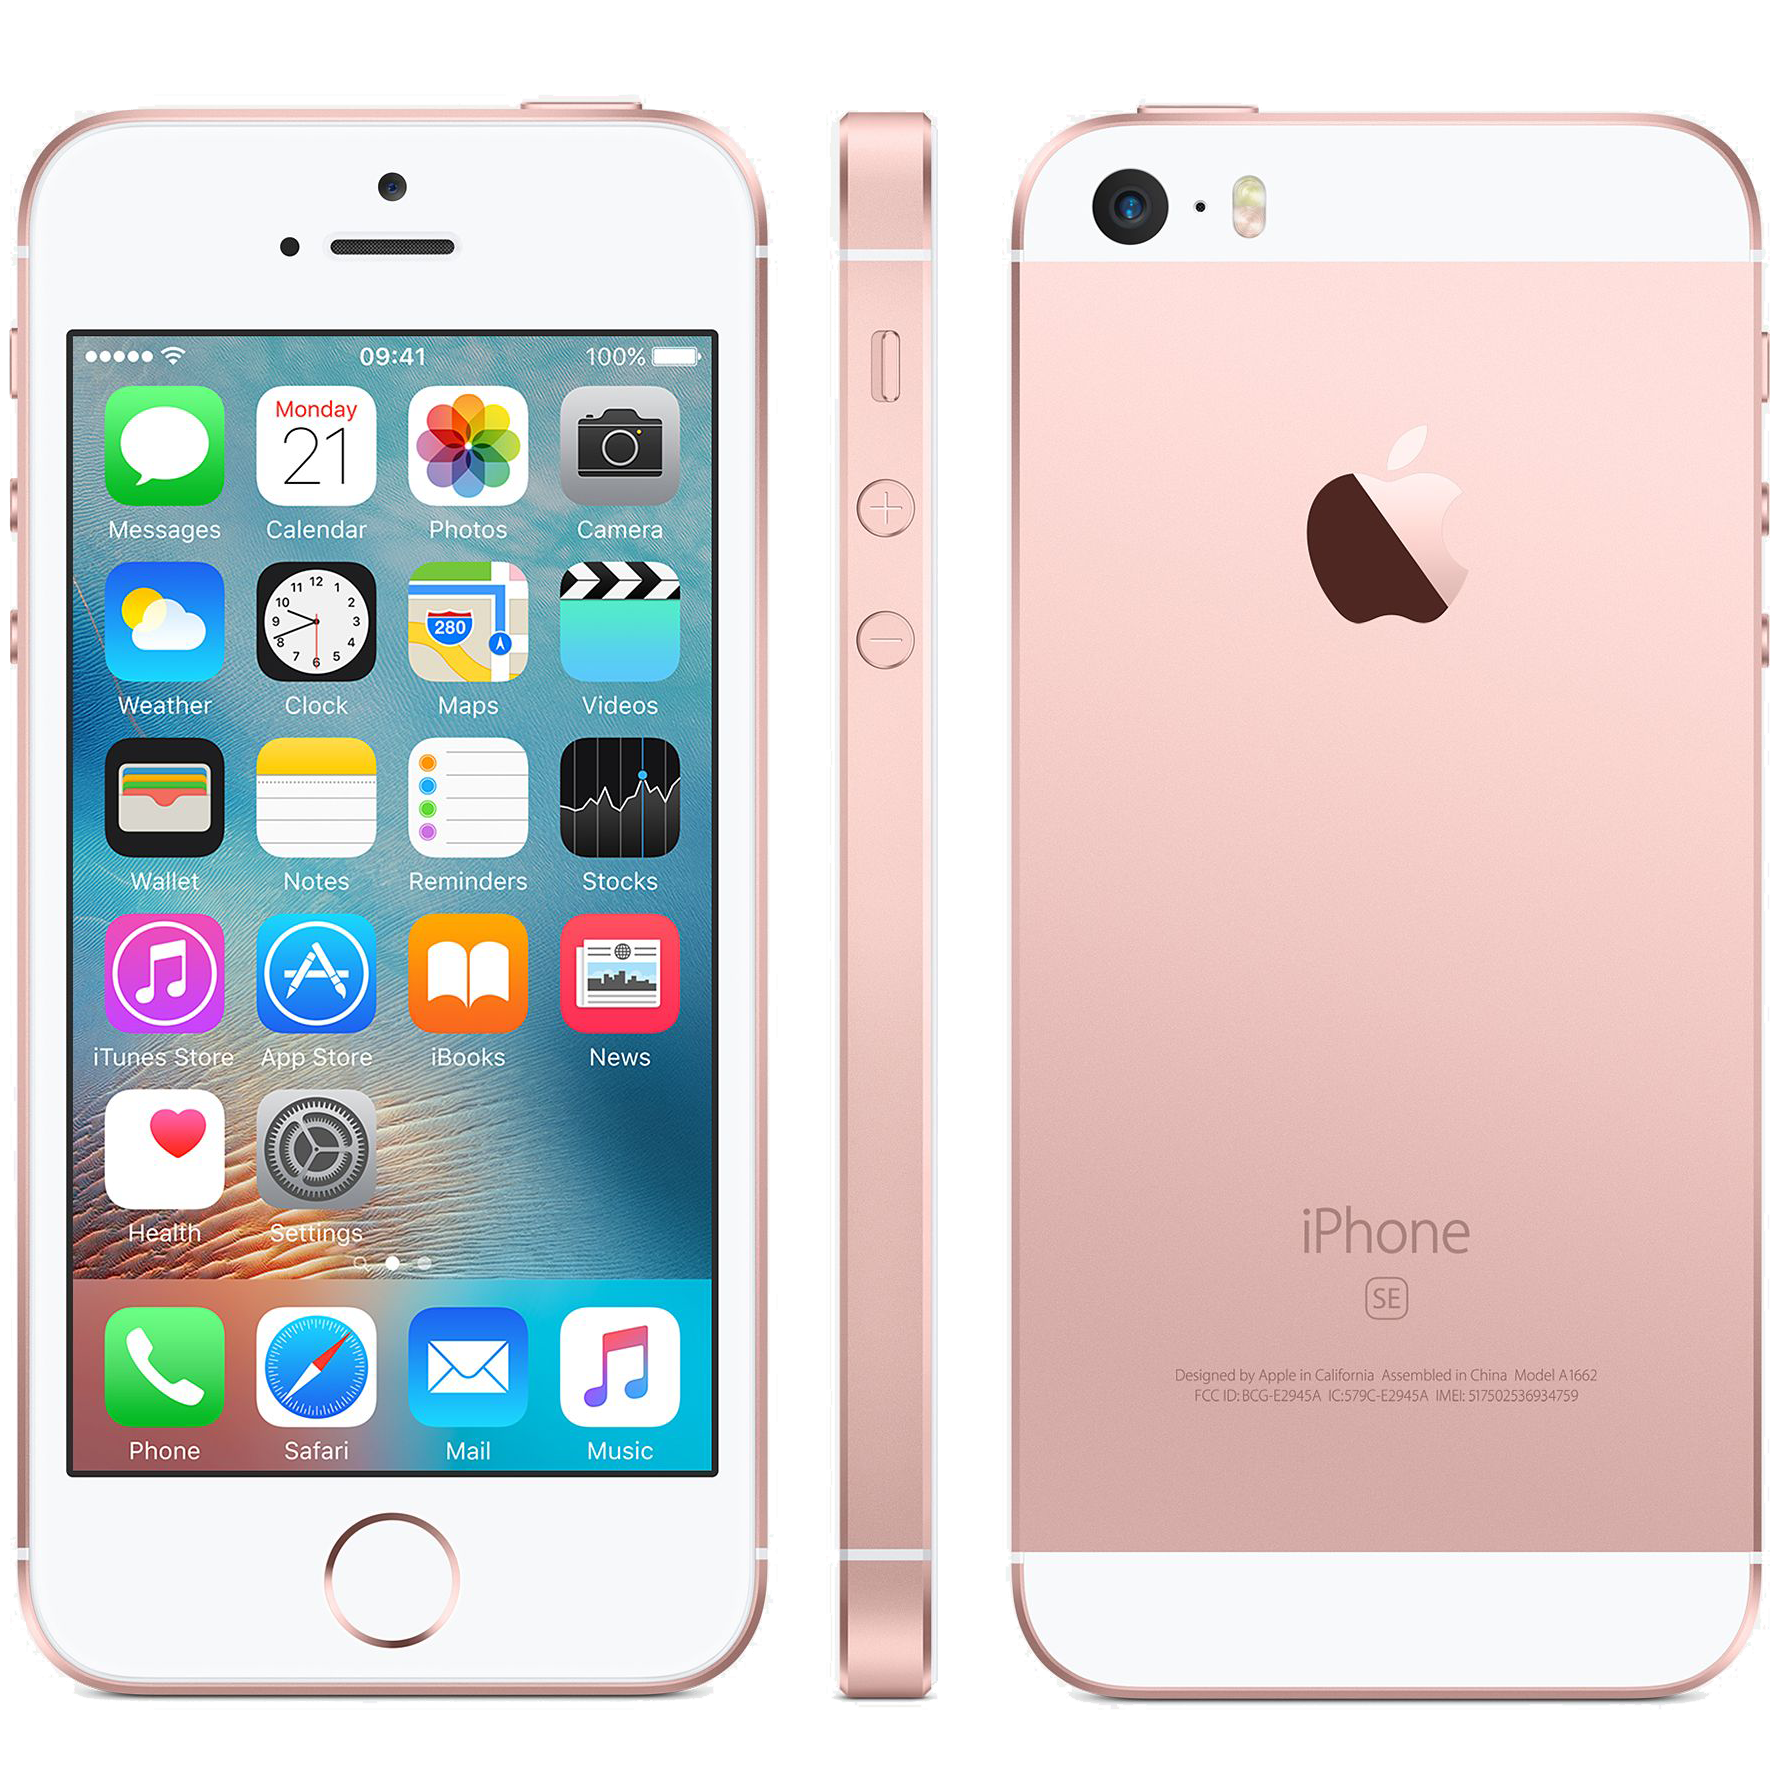 Apple iPhone SE LTE Smartphone with Screen Protector Case and Contract Sprint Metallic